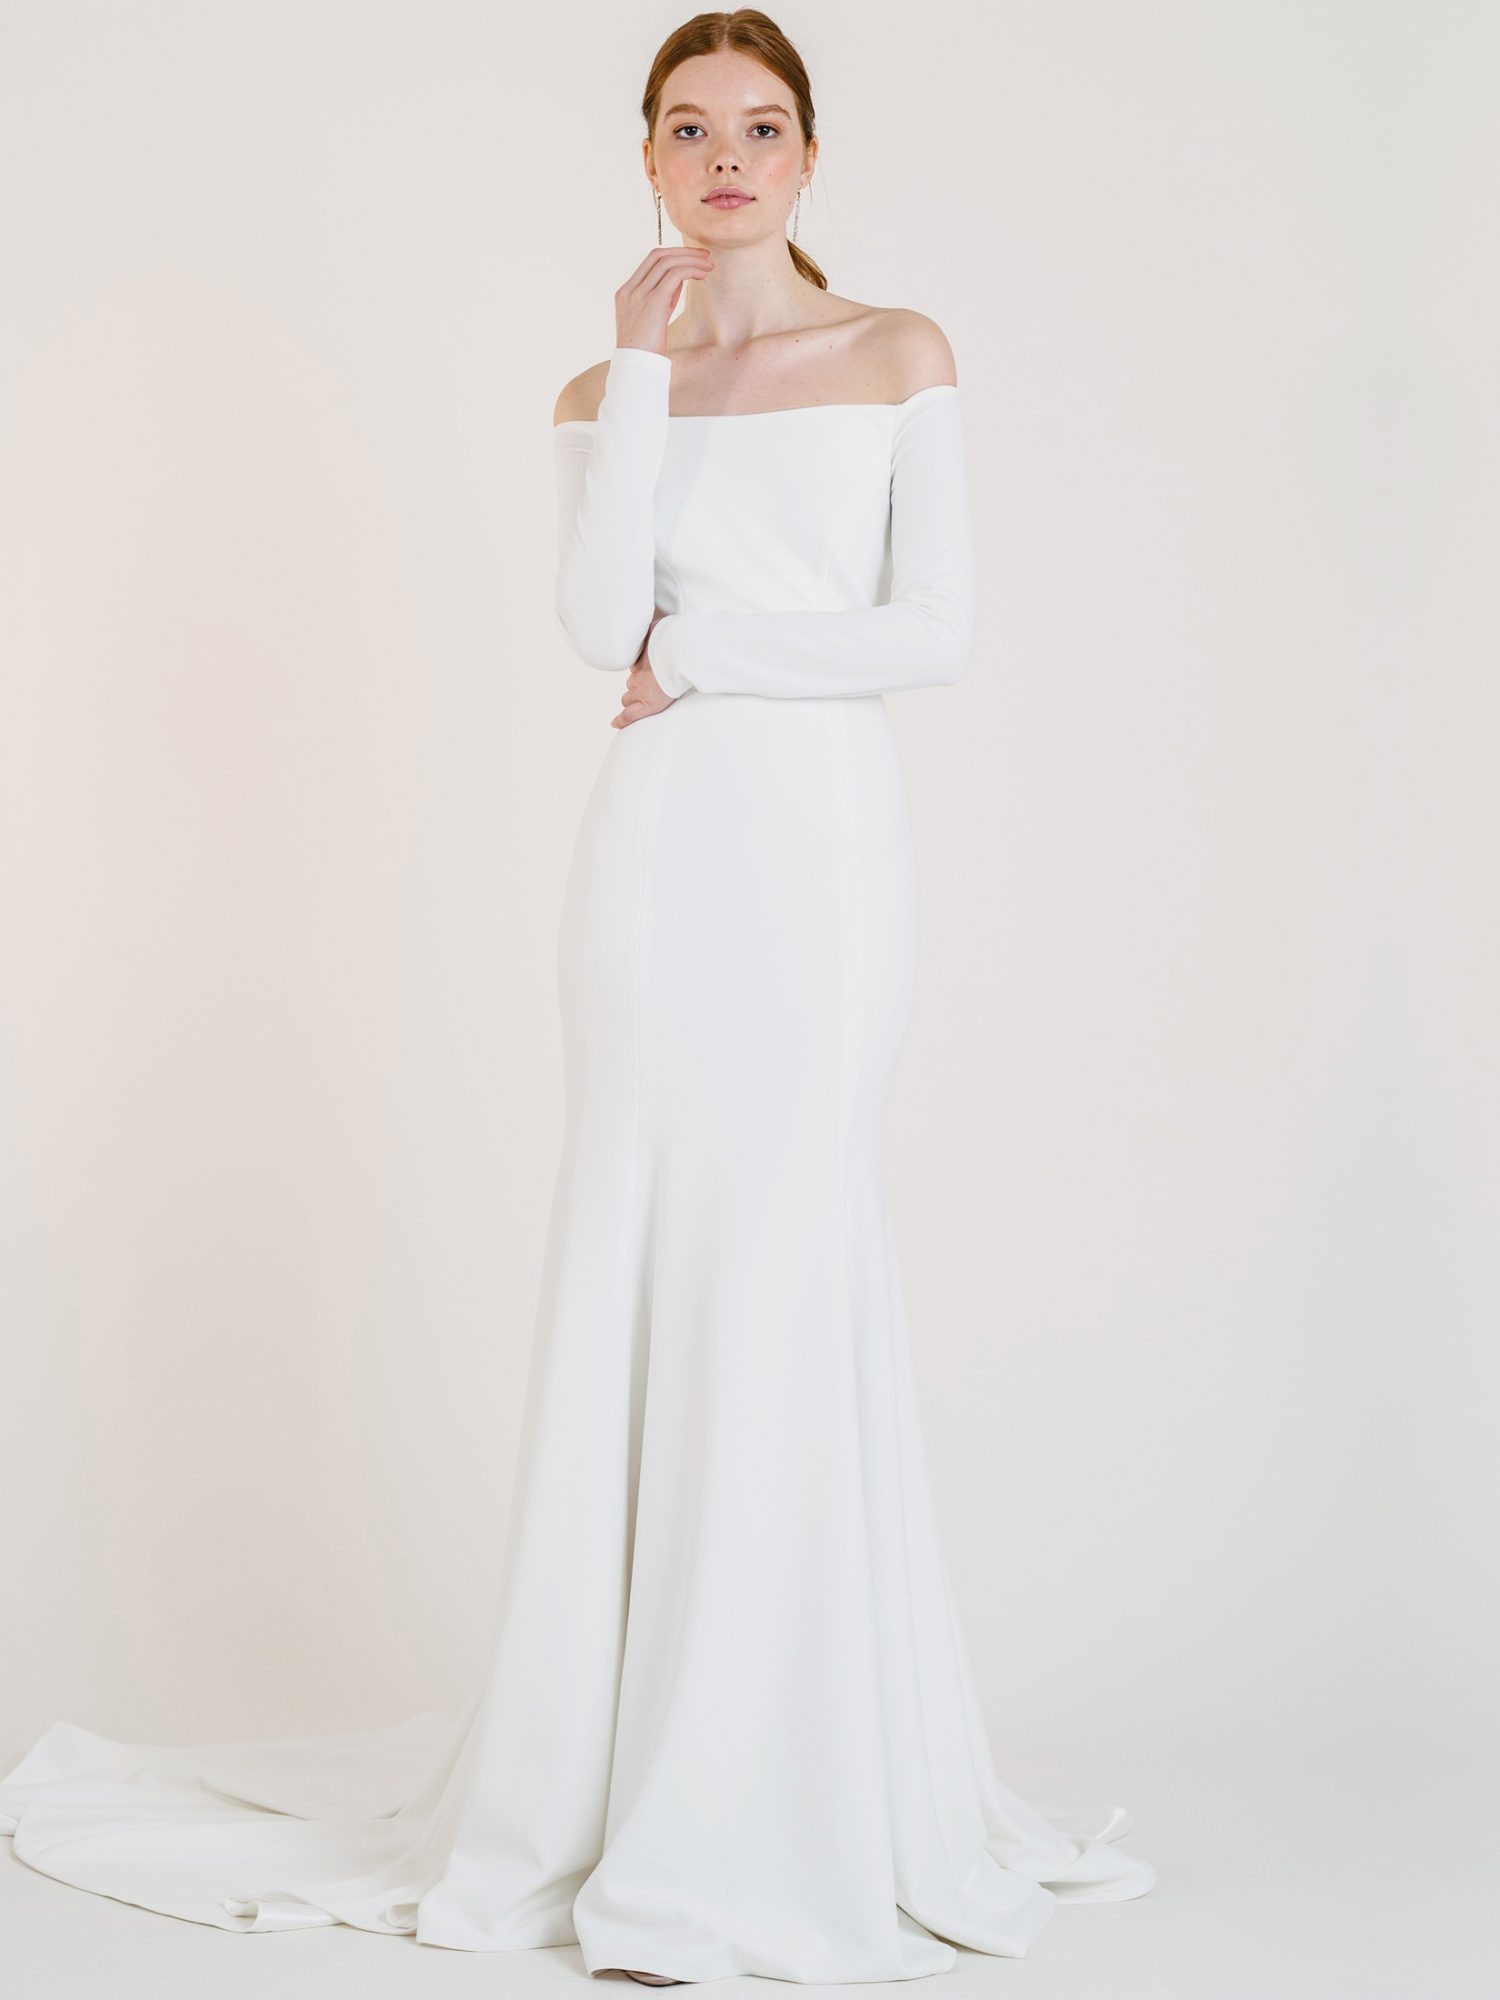 jenny by jenny yoo off-the-shoulder long sleeve fitted wedding dress fall 2020